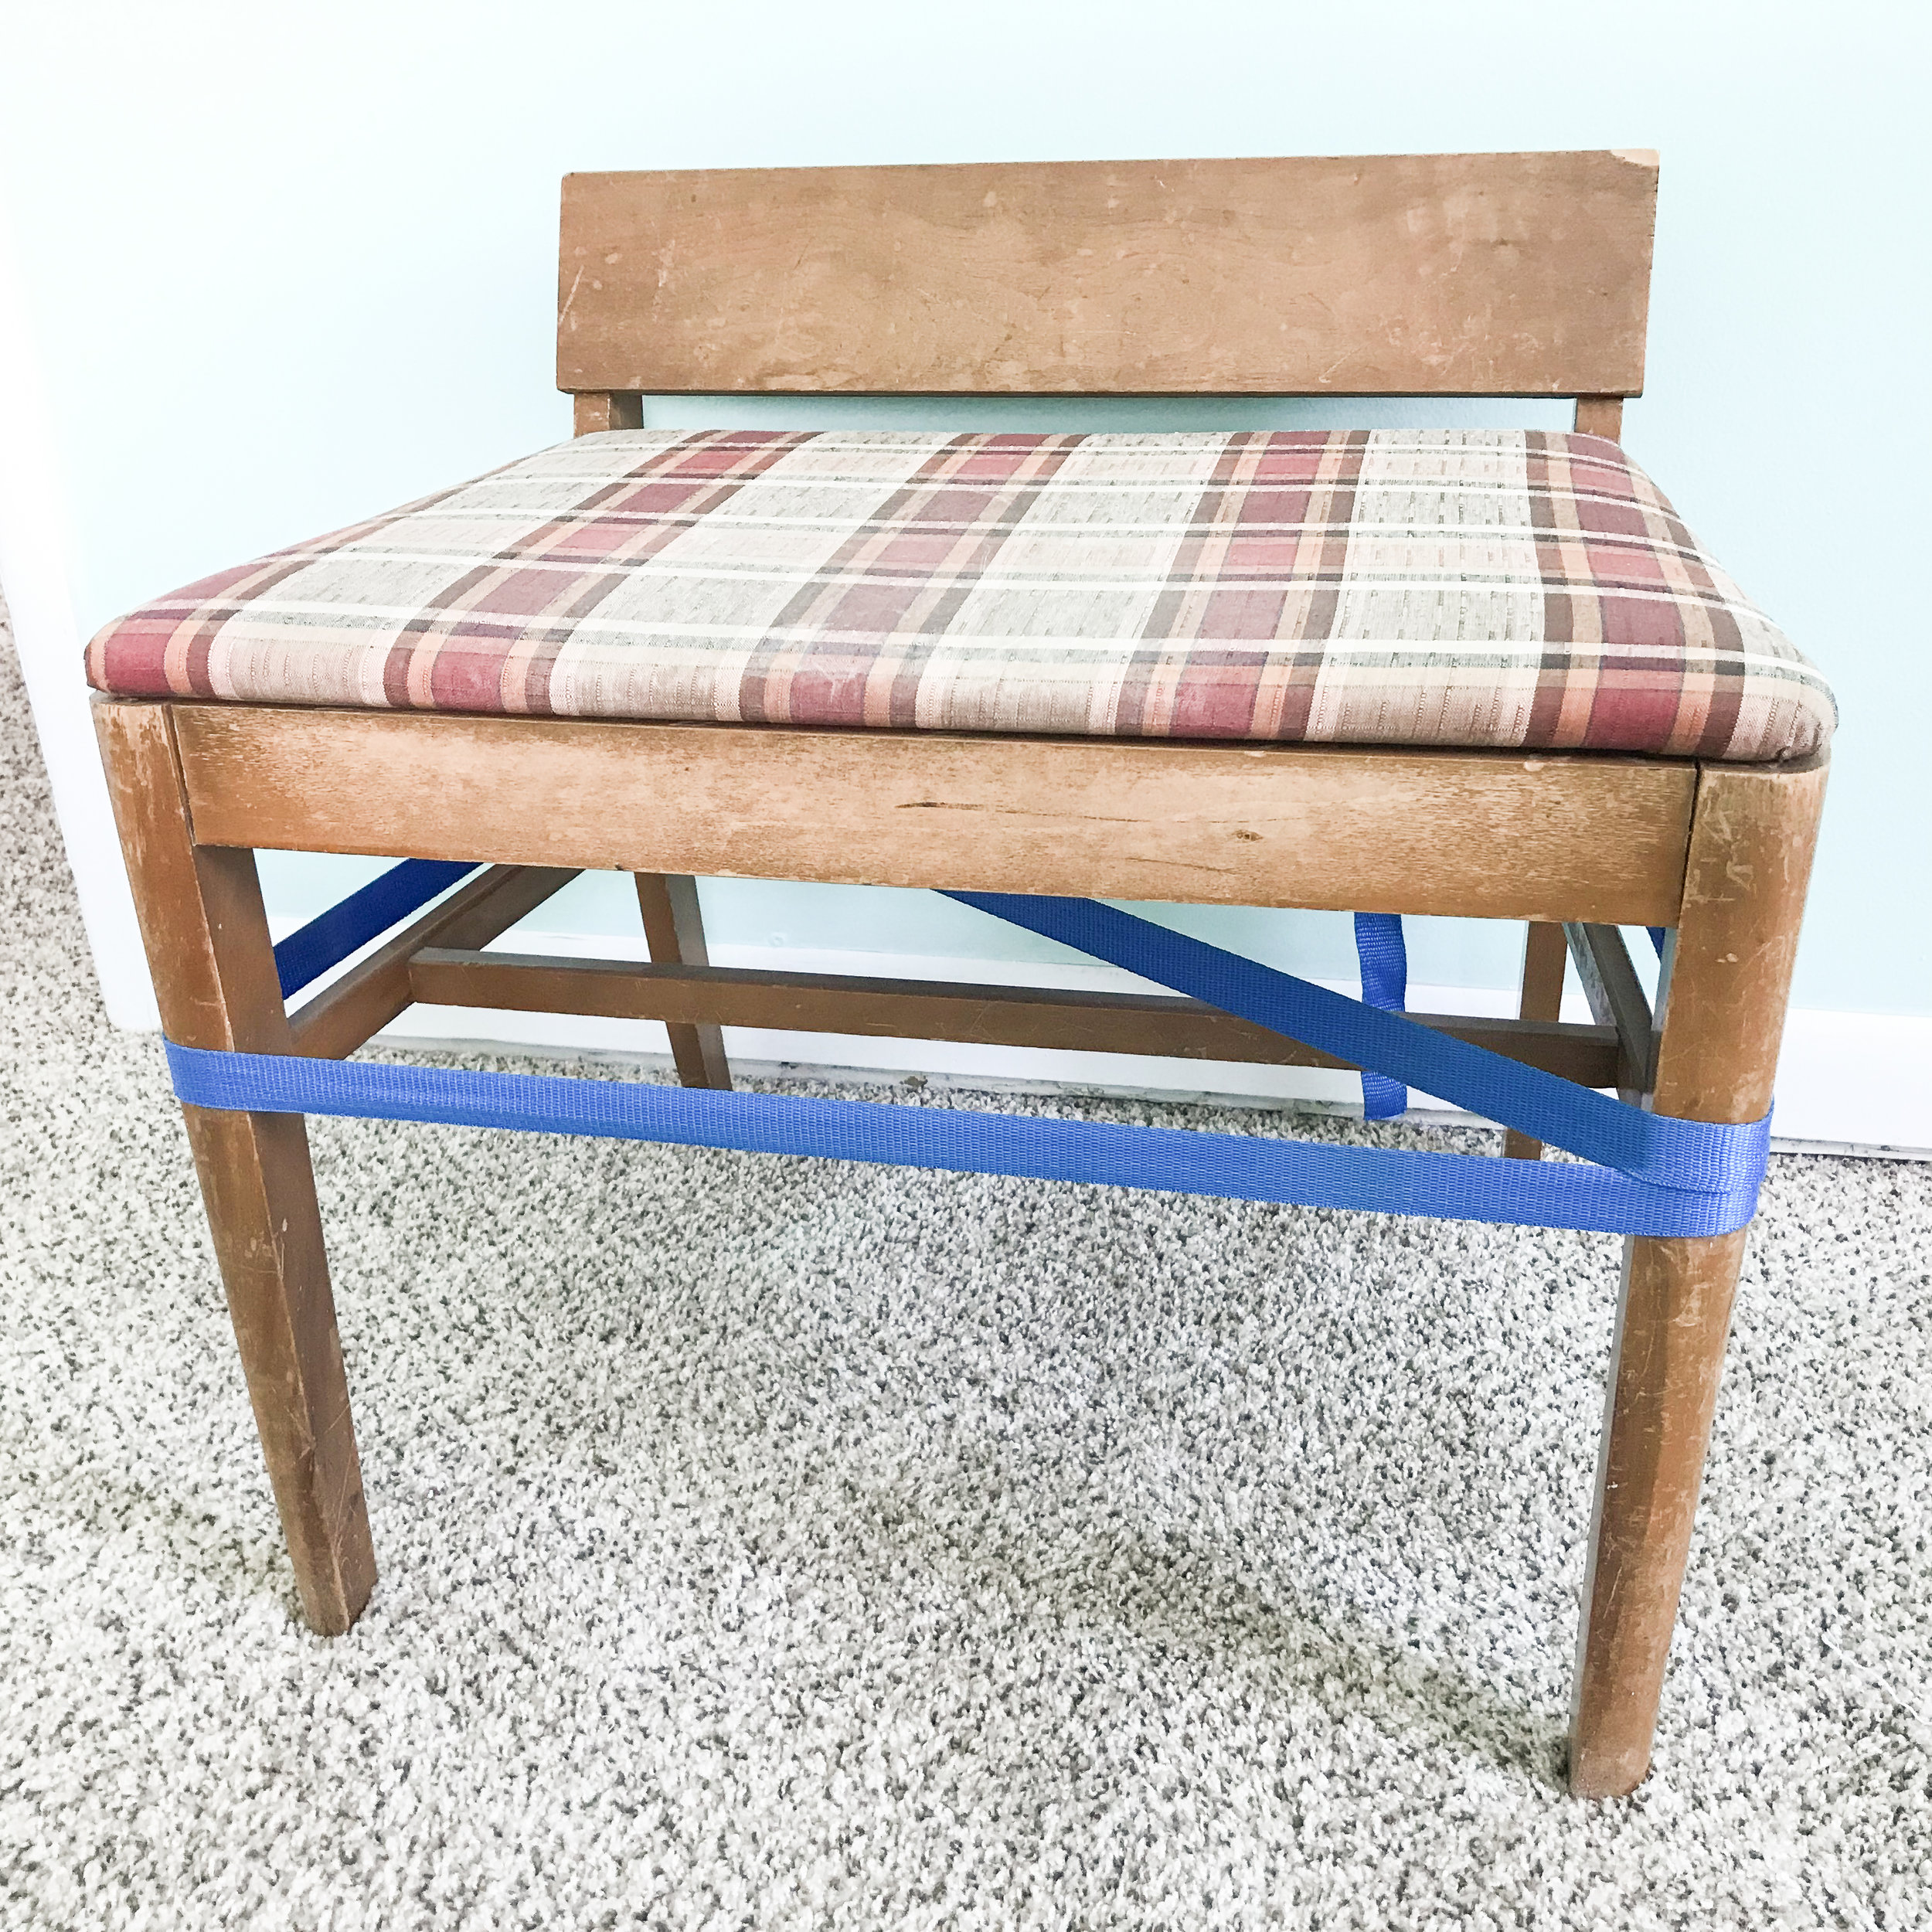 My $5 bench used to sit at my dressing table. Now it will find another home.